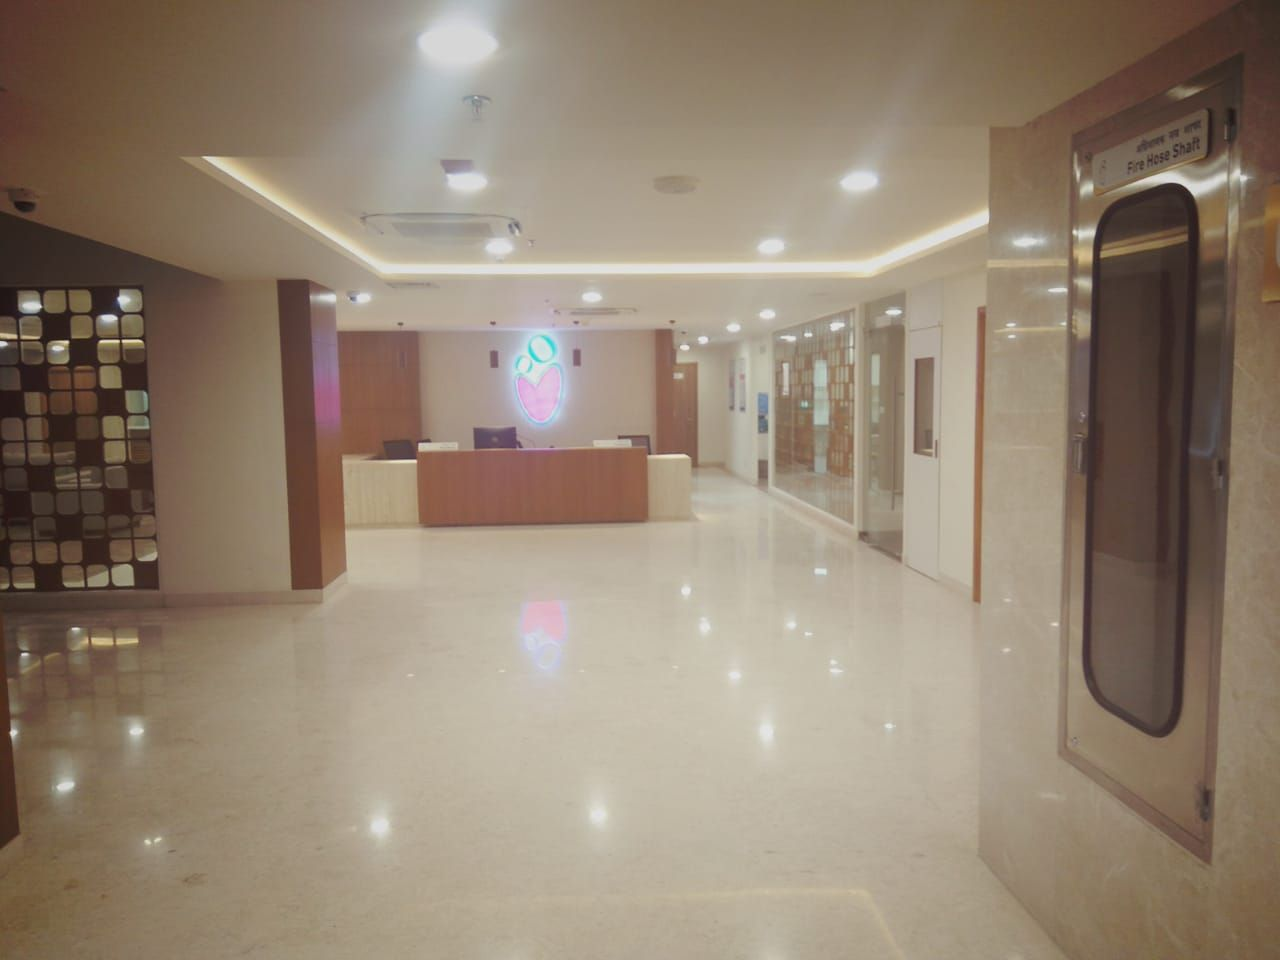 Best Maternity Hospital in Indore | Maternity hospital ...